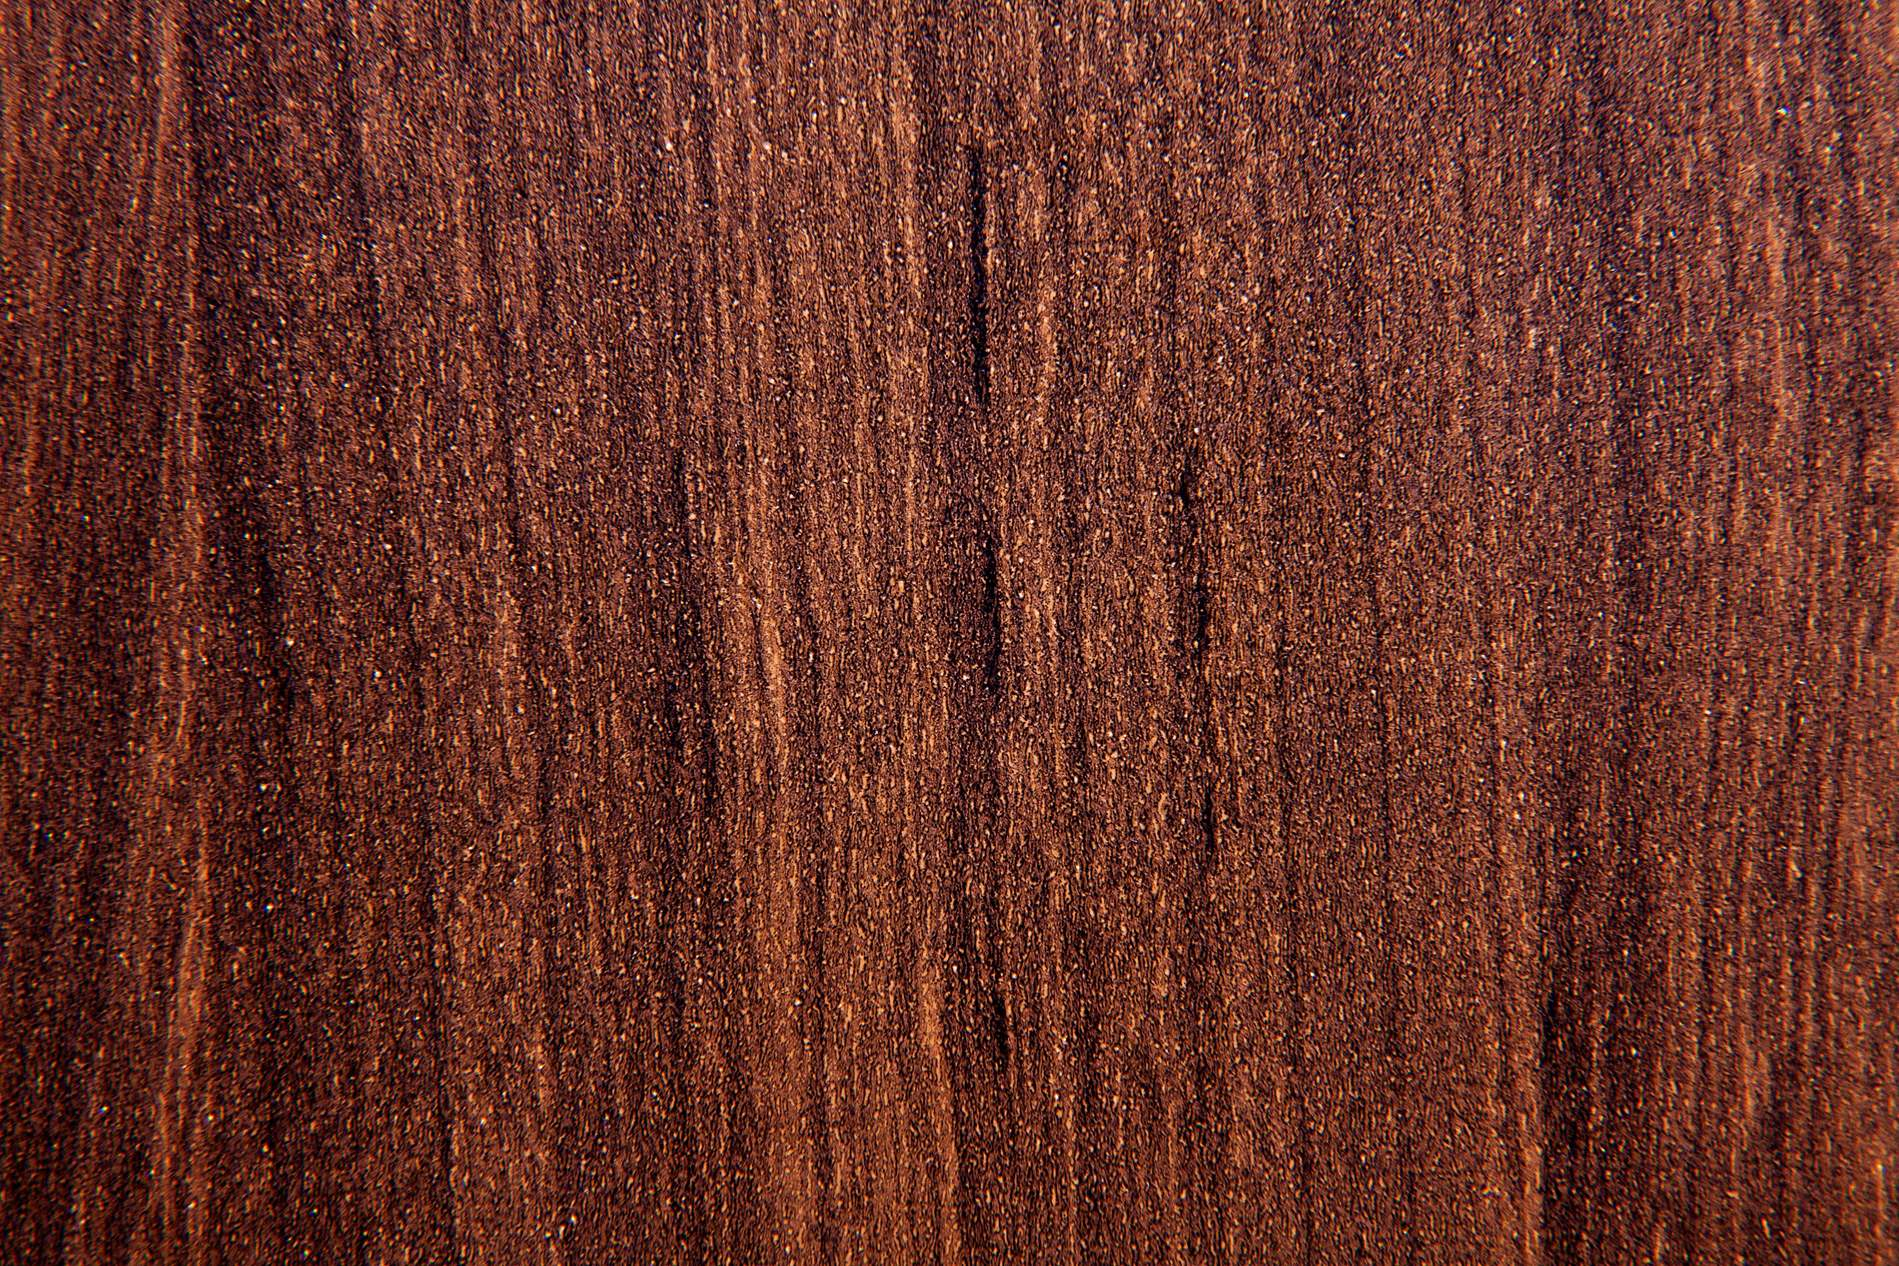 Wood Furniture Texture dark brown wood furniture texture - photohdx